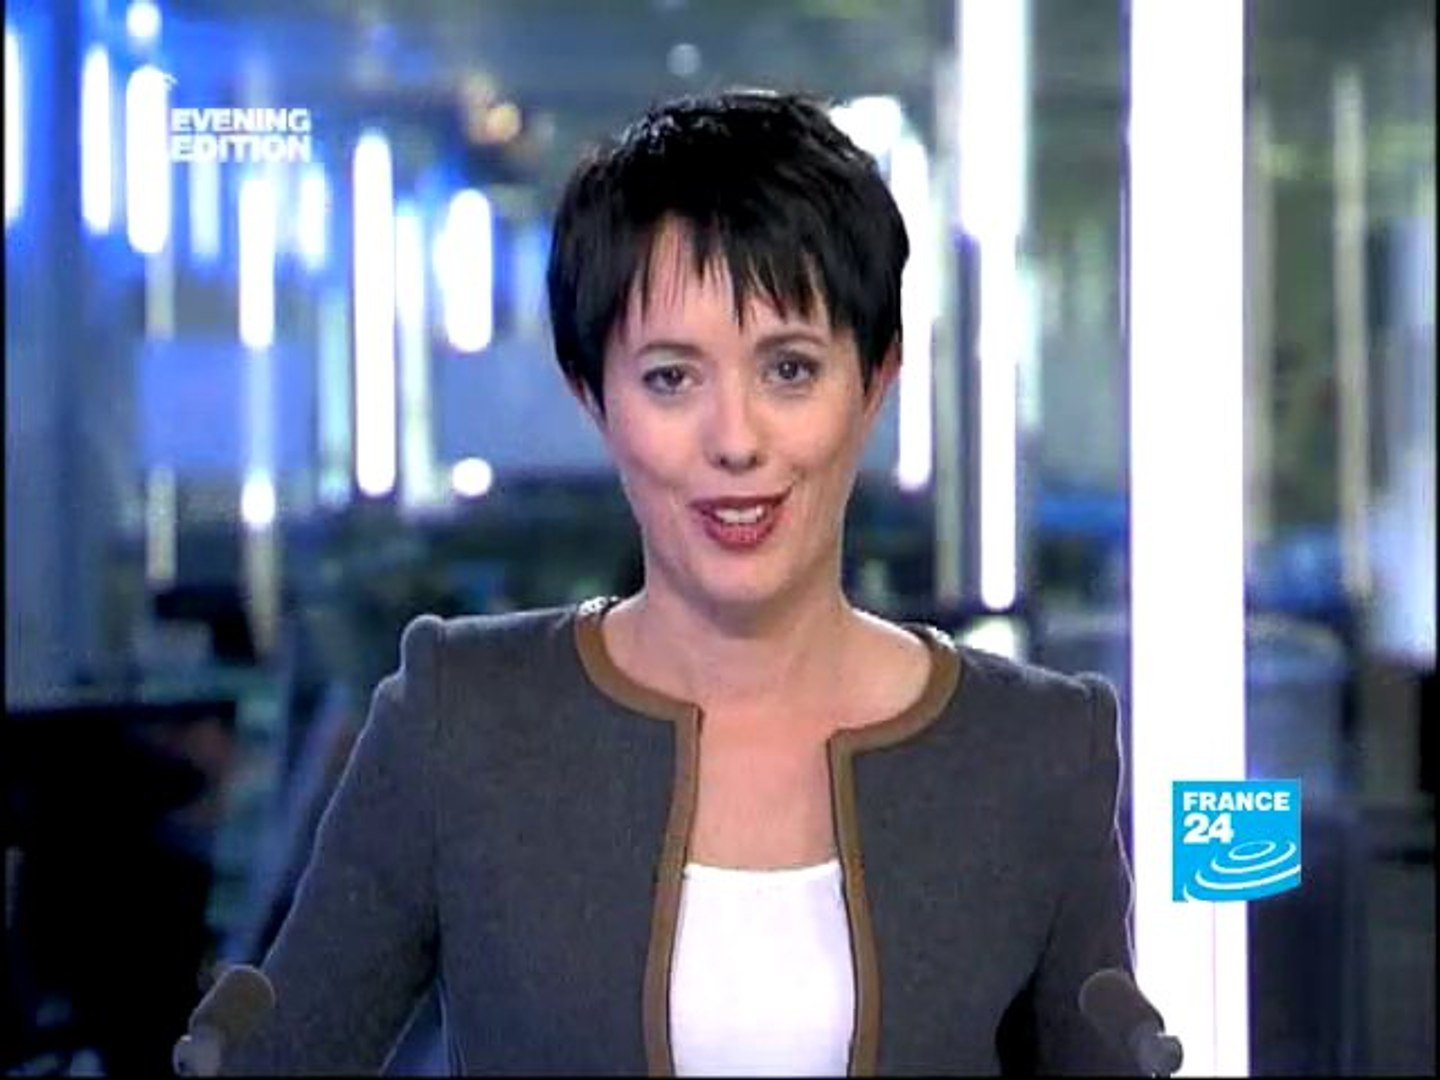 Daily FRANCE 24's international news flash